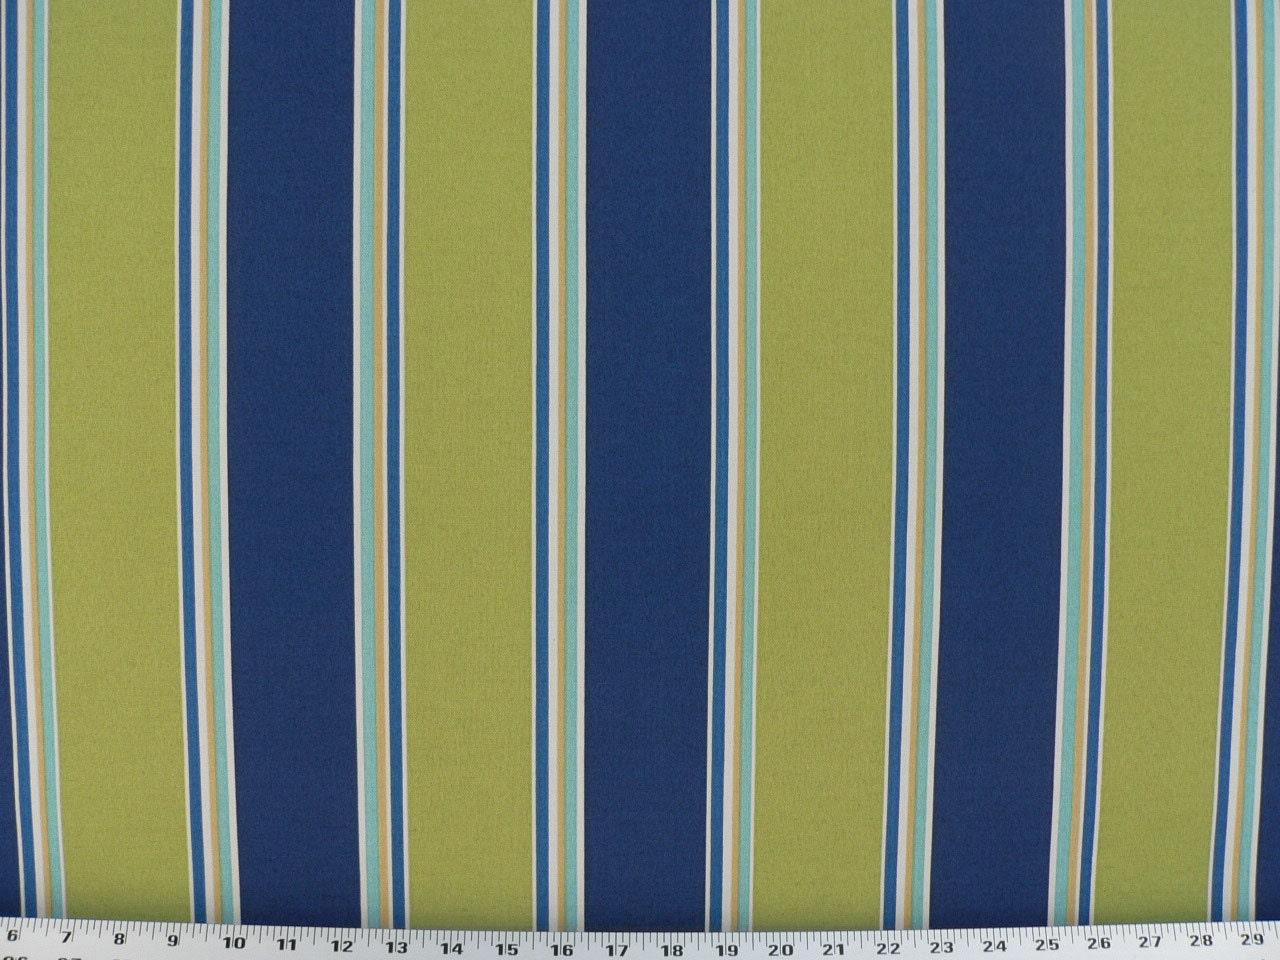 Outdoor Fabric, Drapery Fabric, Upholstery Fabric, Umbrella Fabric ...